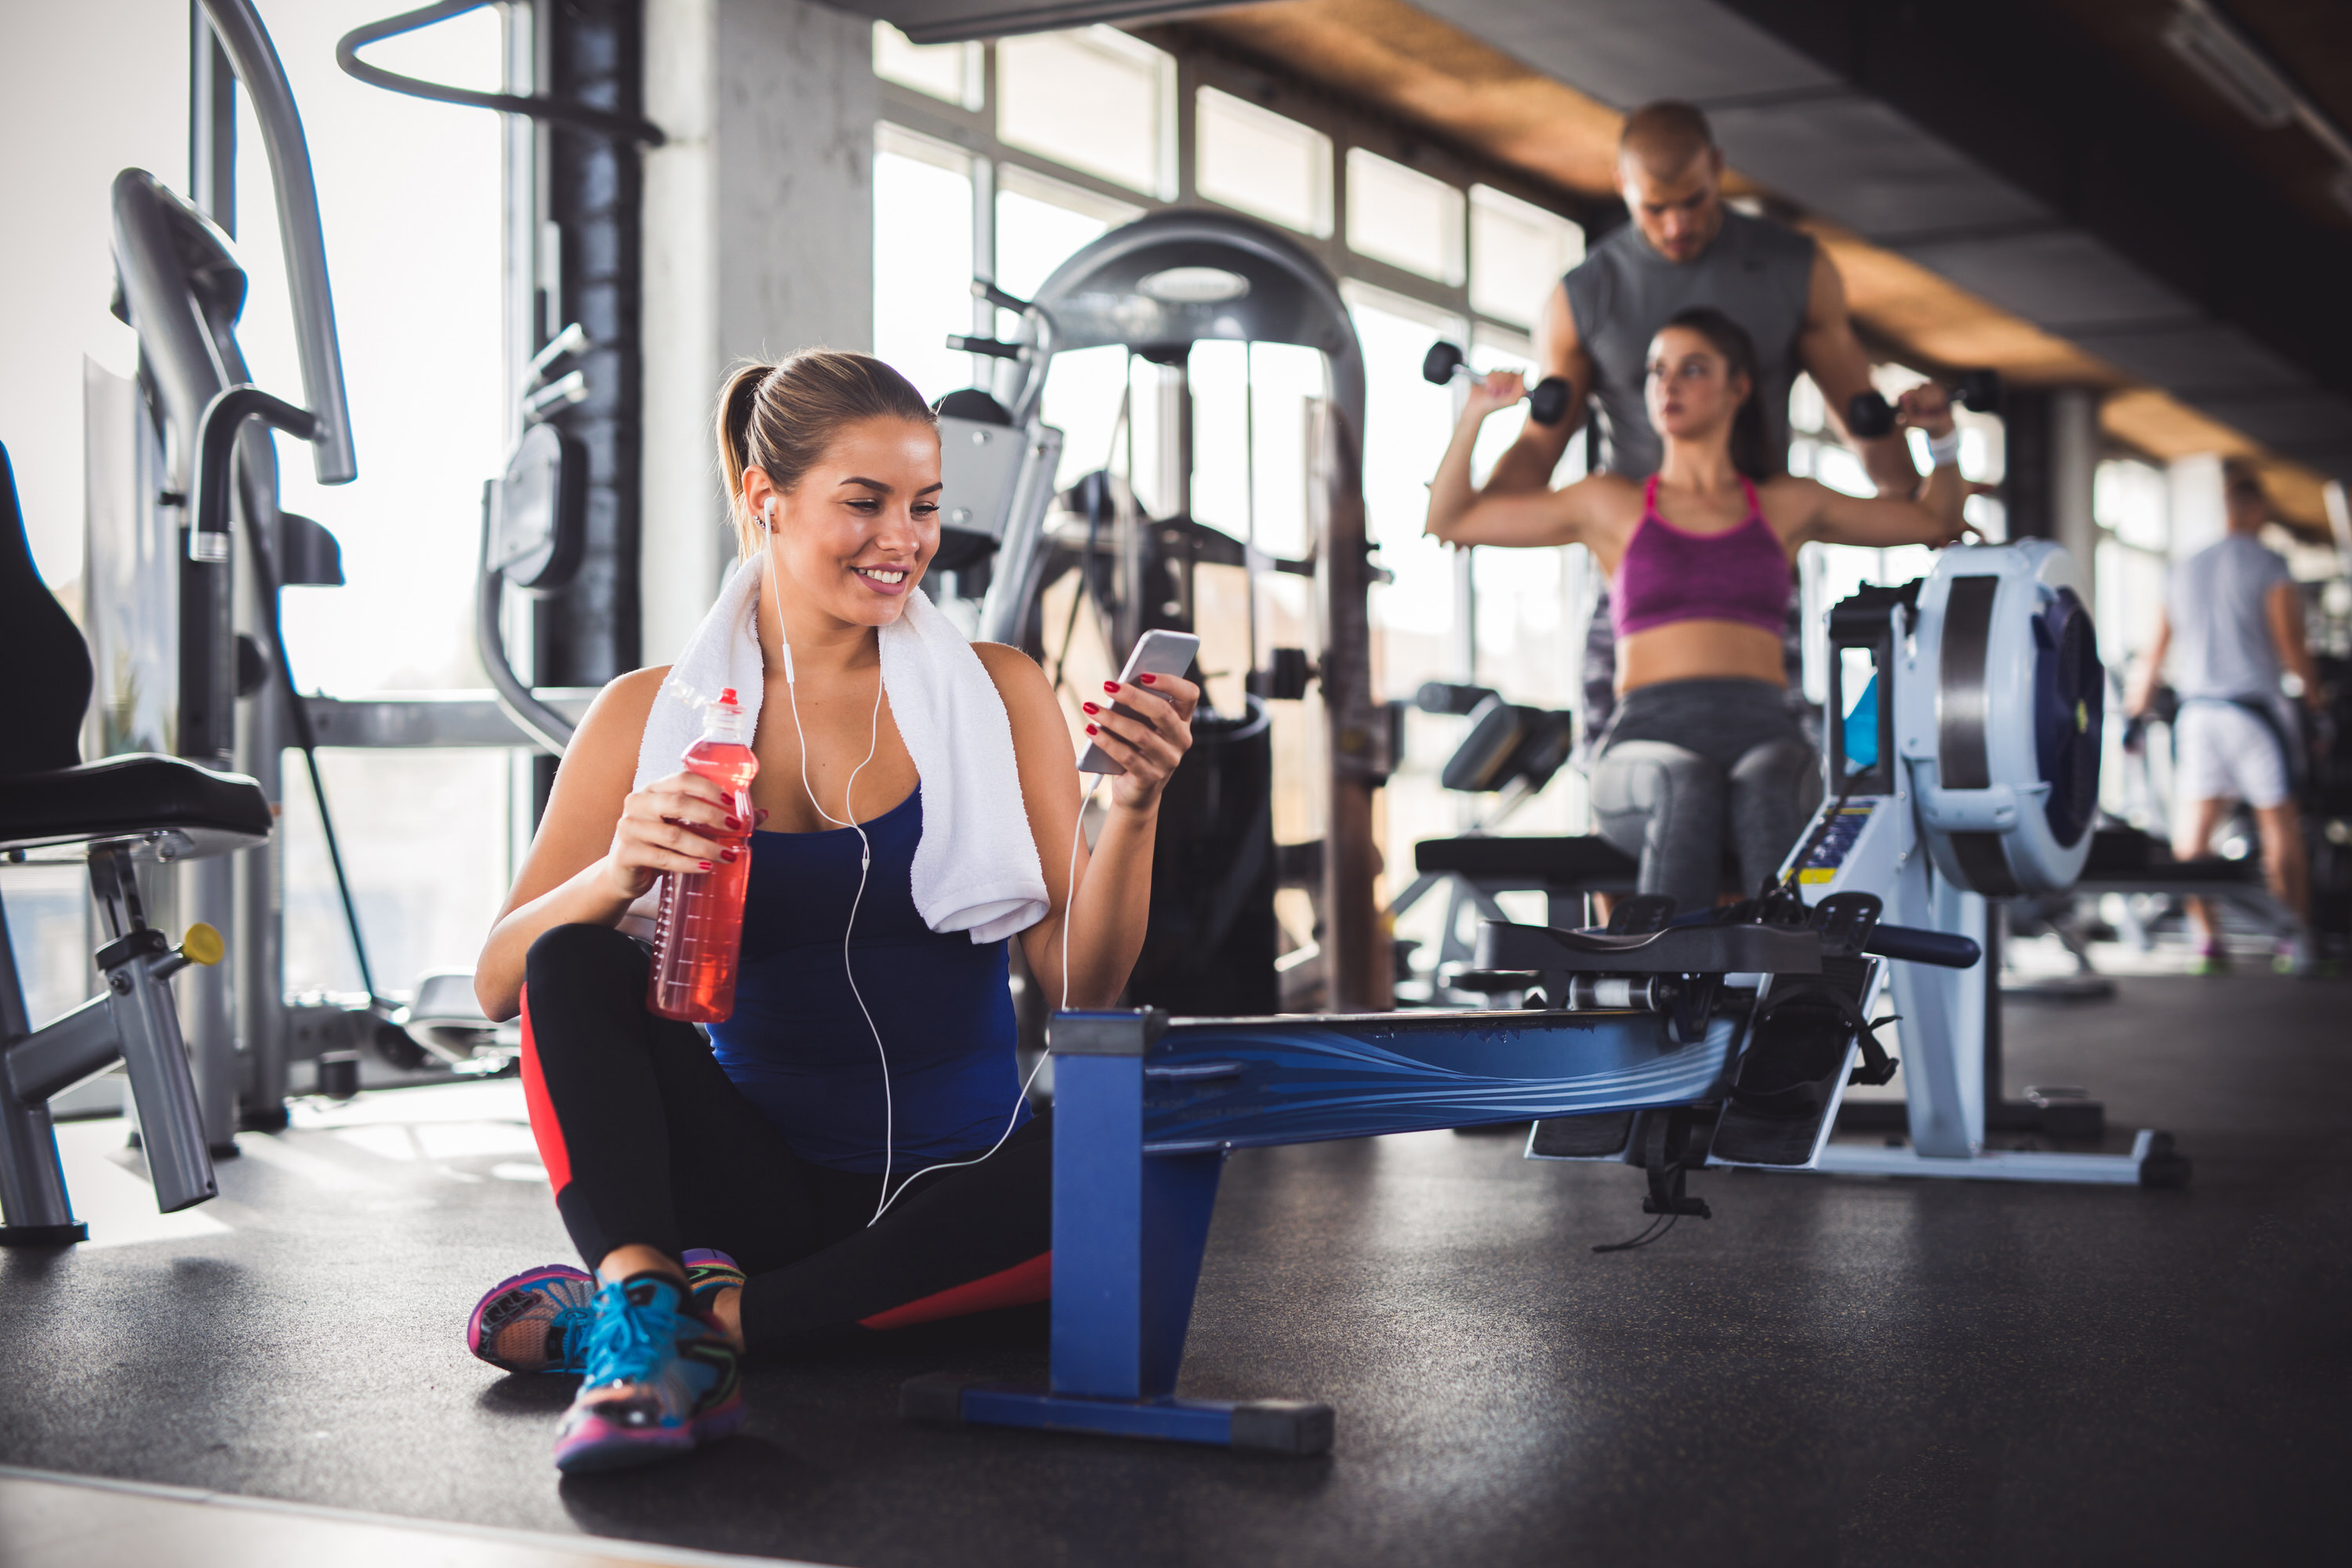 Young sporty woman using mobile phone at the gym while resting from workout. There are two people exercising in the background.